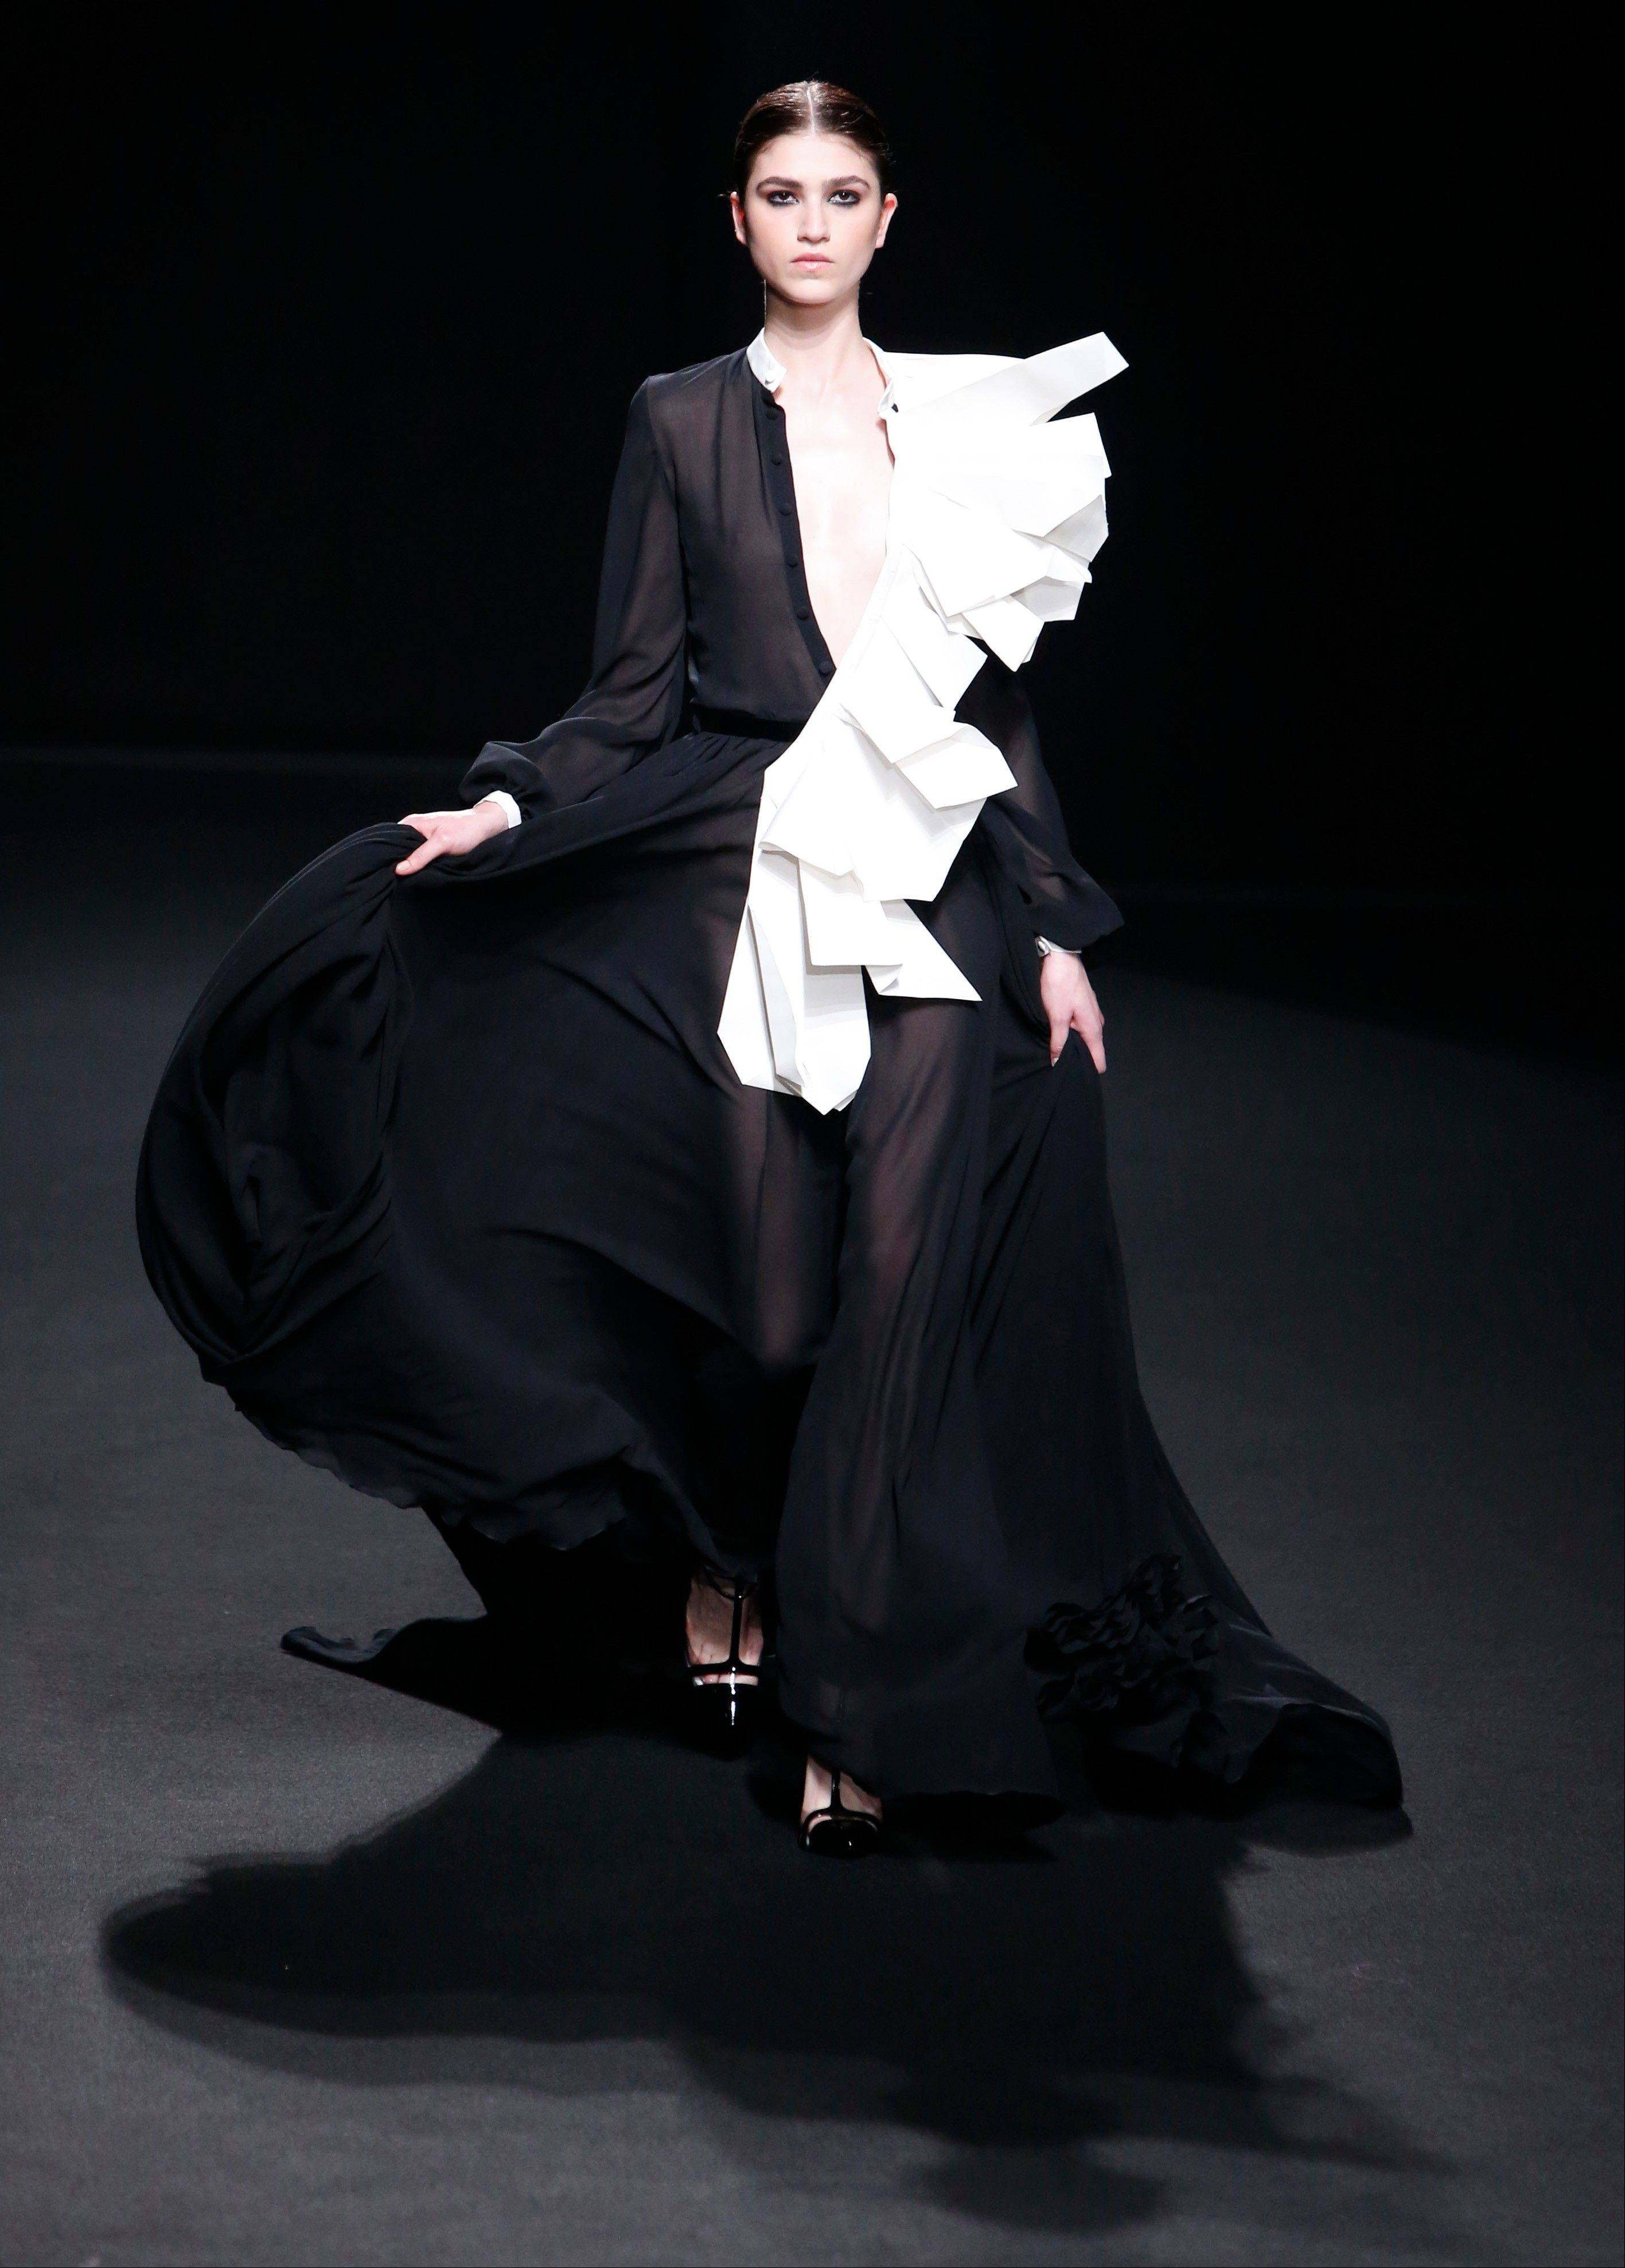 Htel s One-of-a-Kind Jackets Are Made From Parisian Hotel Curtains Nayna fashion and draperies